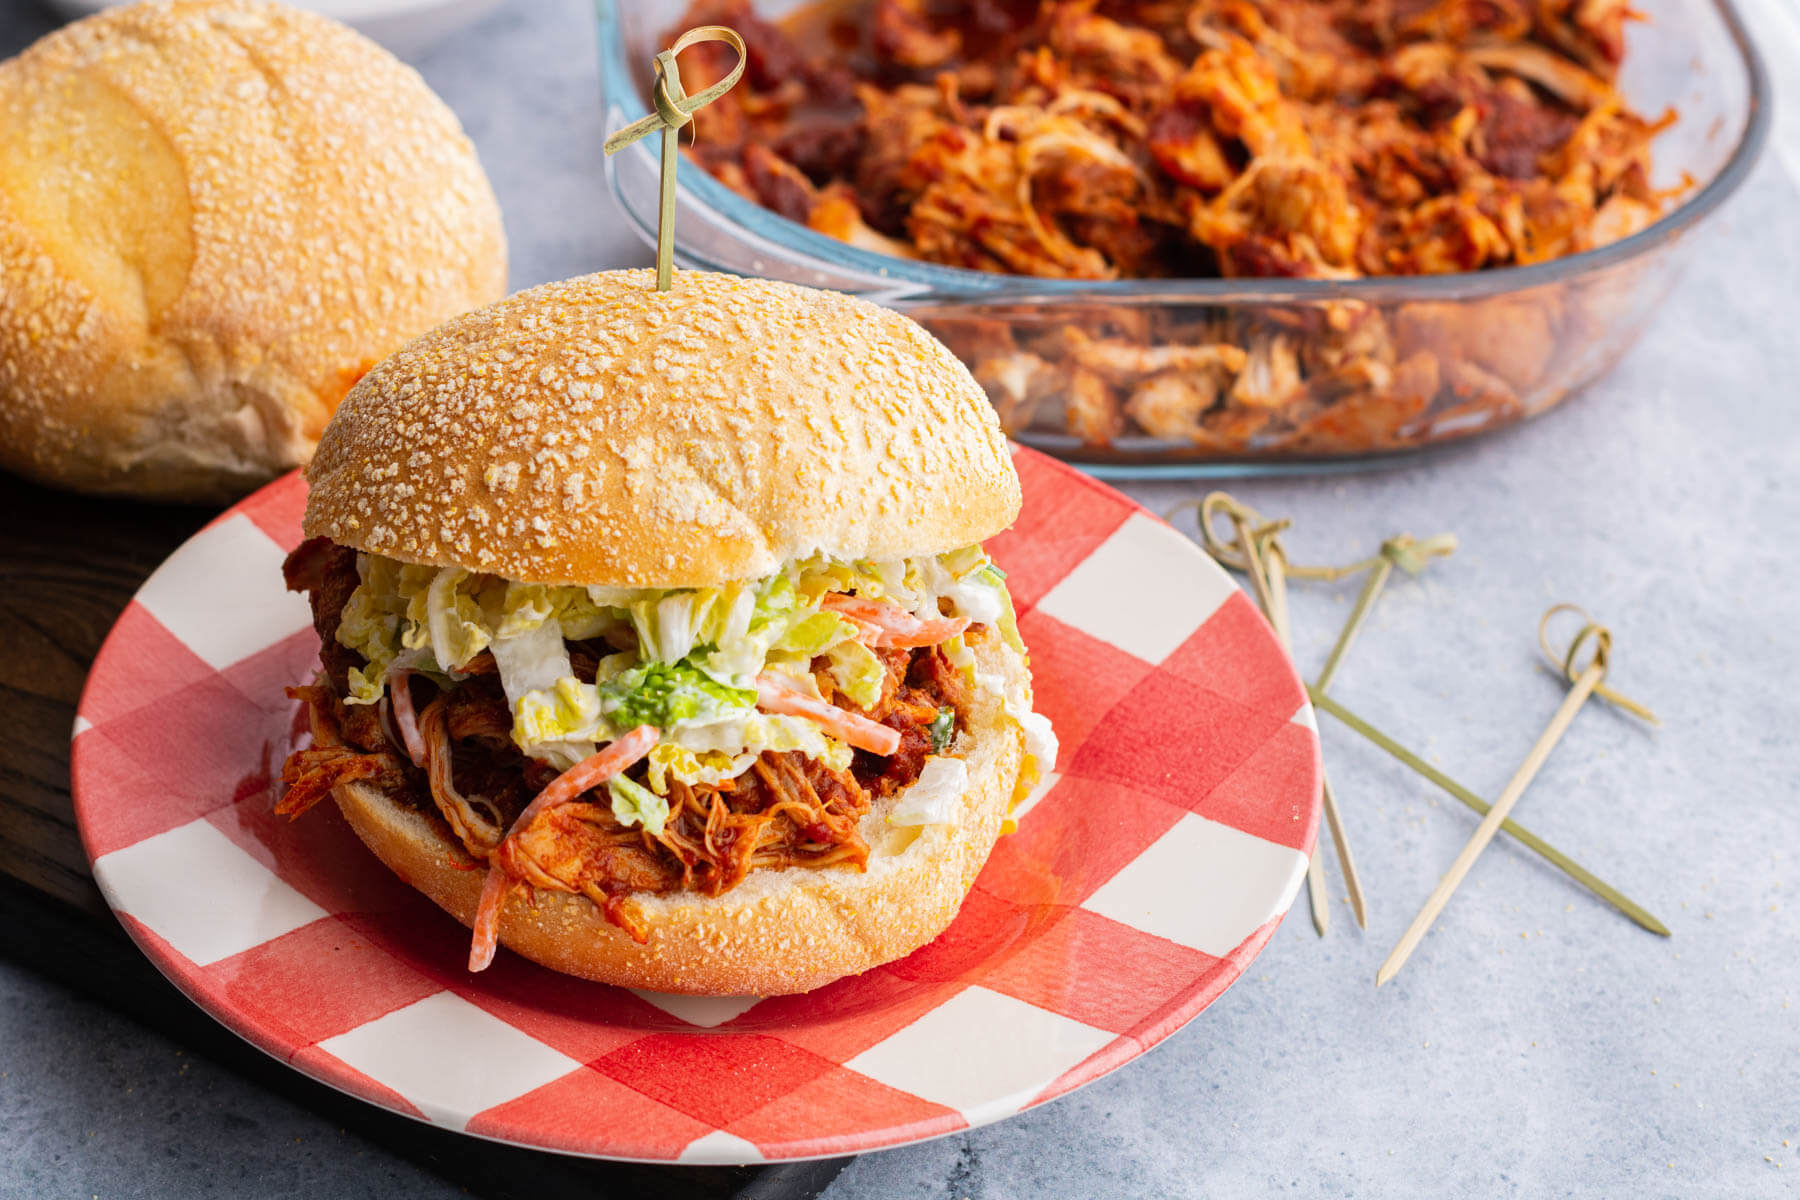 A soft white bun containing BBQ Pulled Chicken and coleslaw.